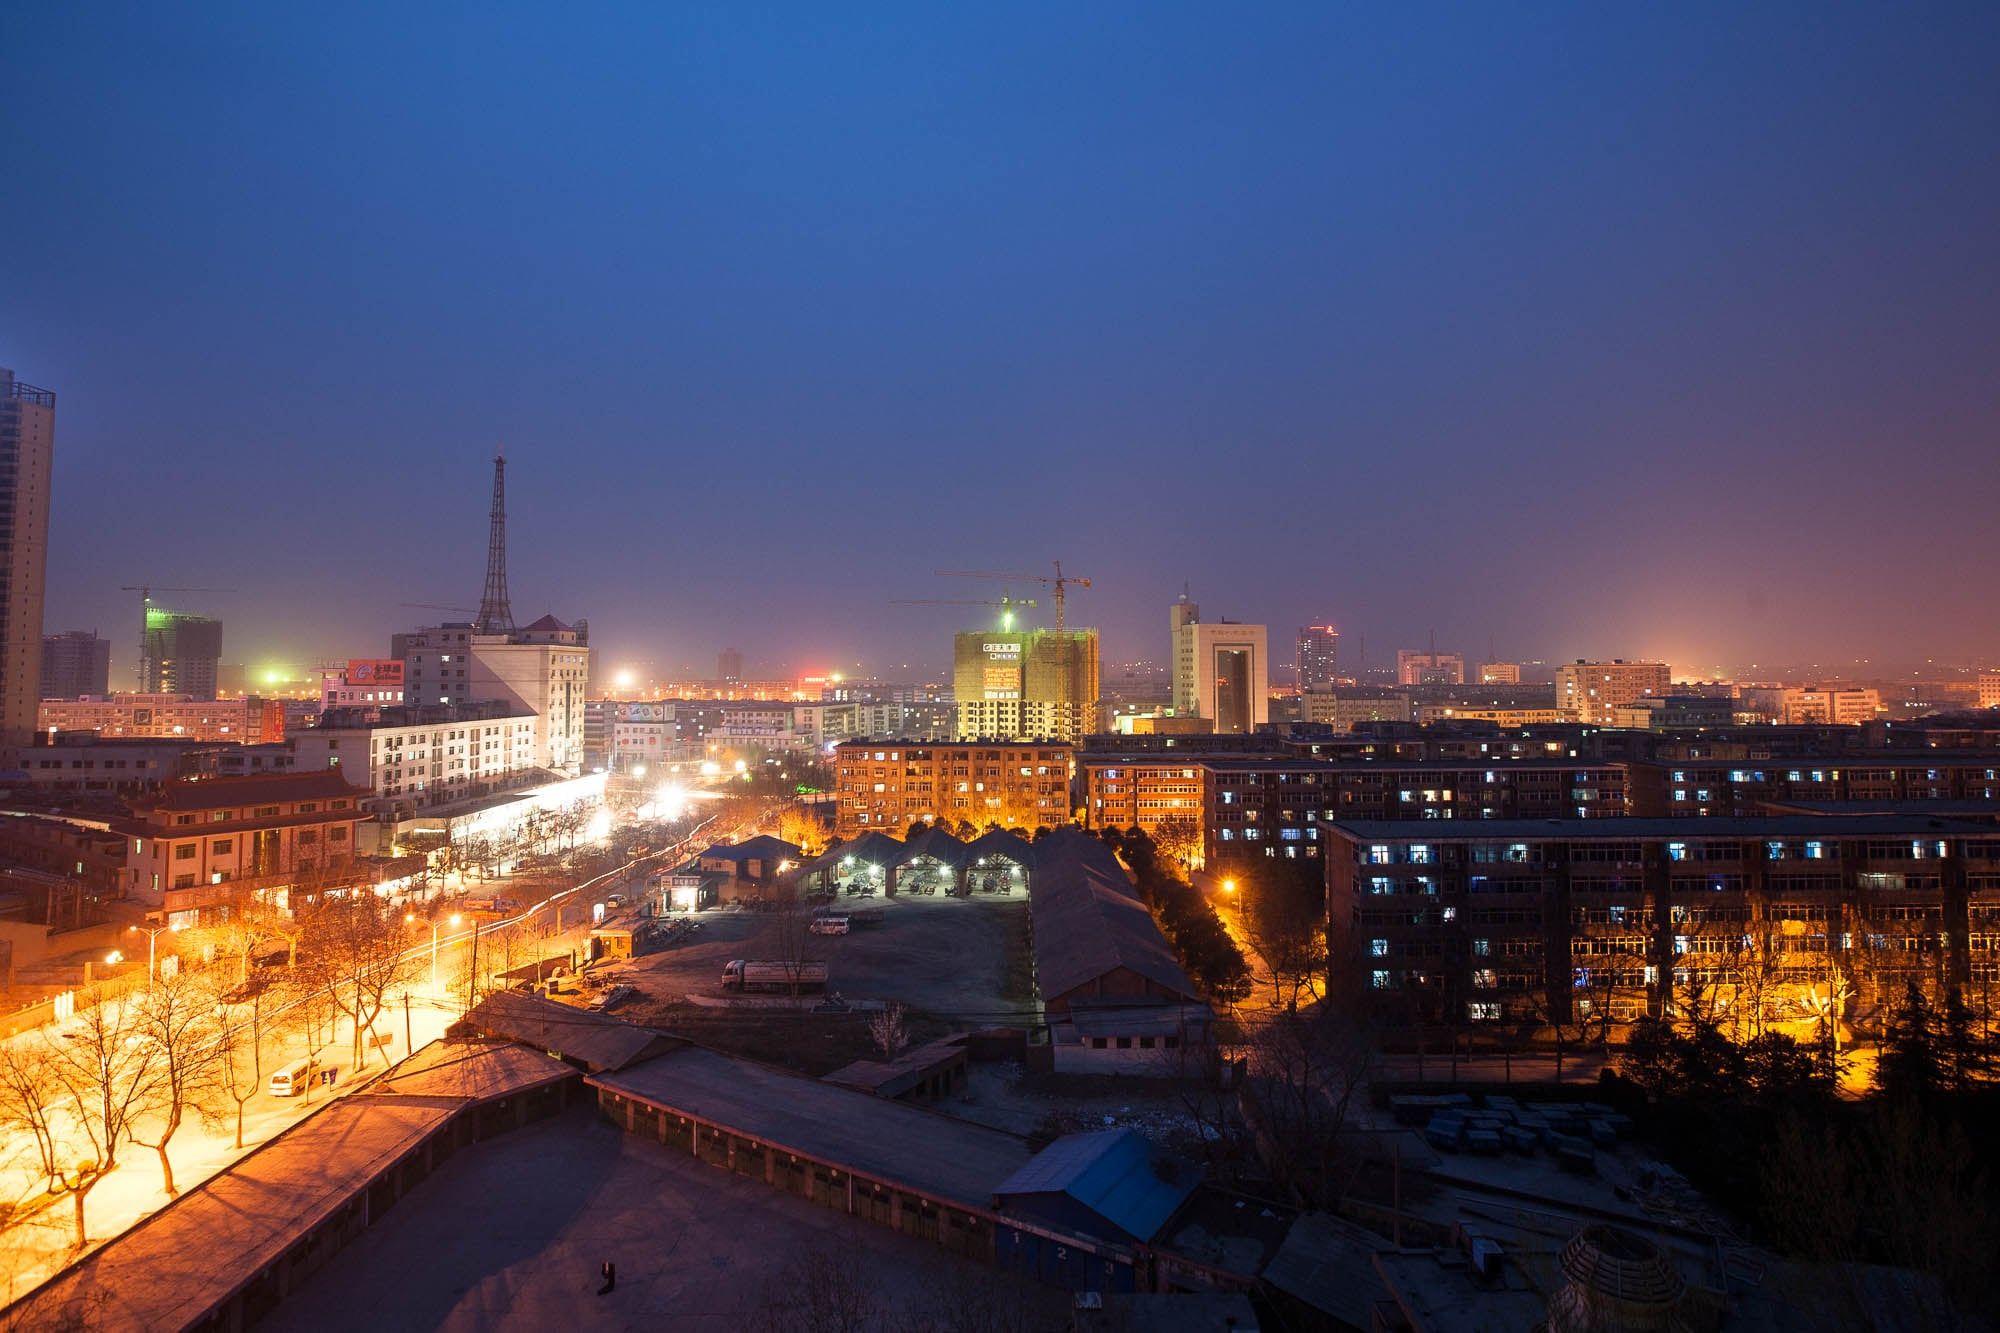 Xianyang at night